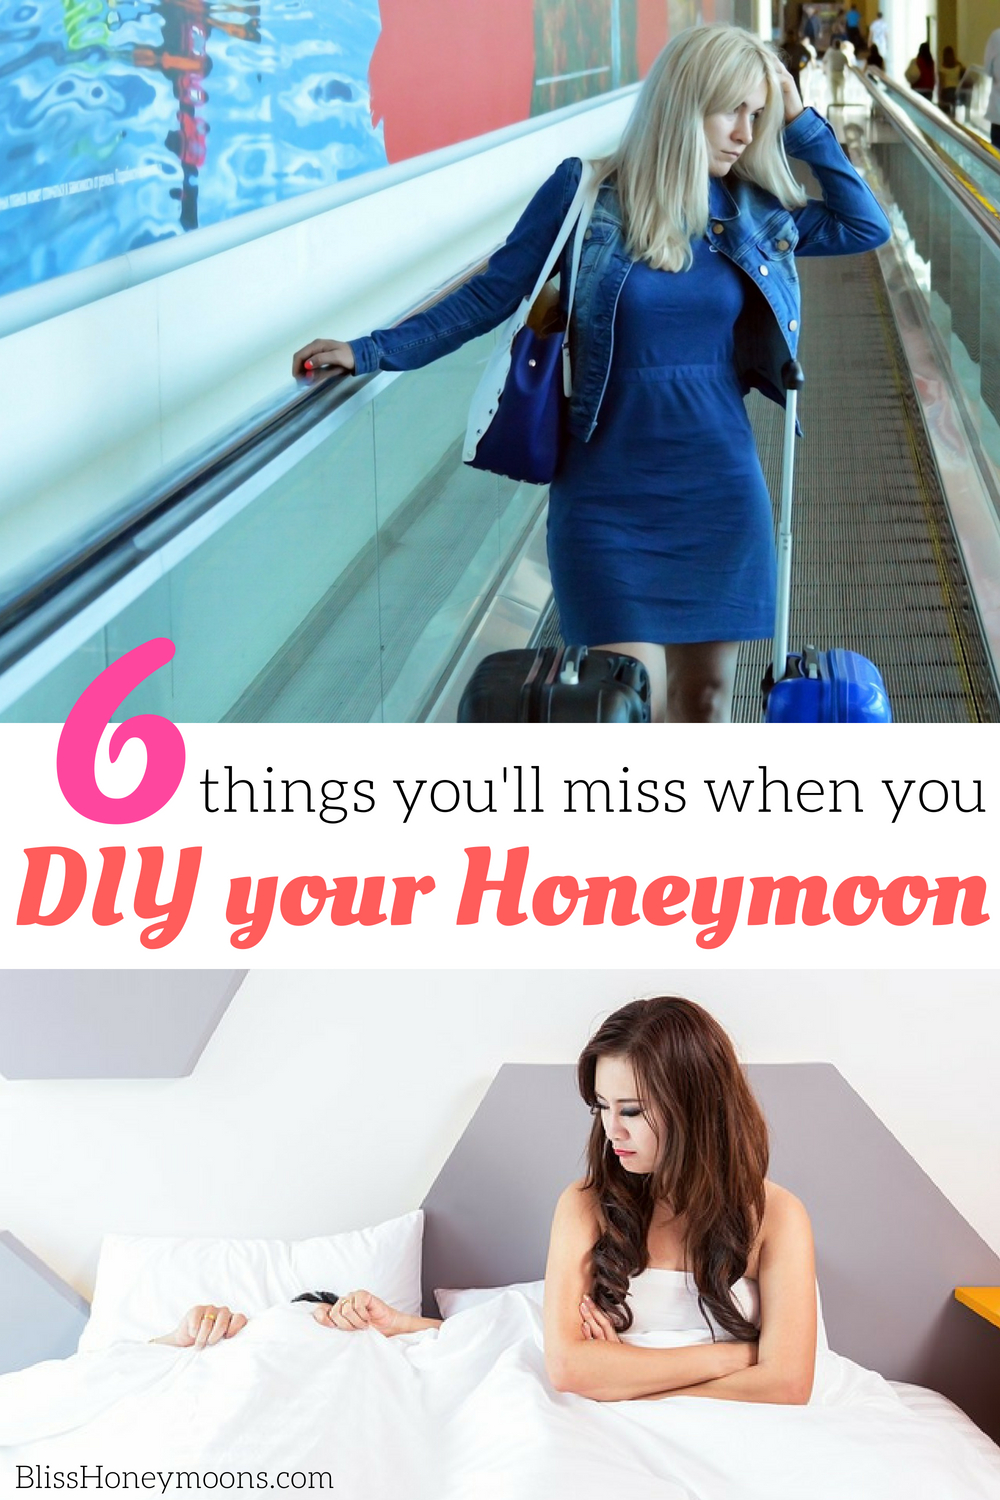 DIY honeymoon